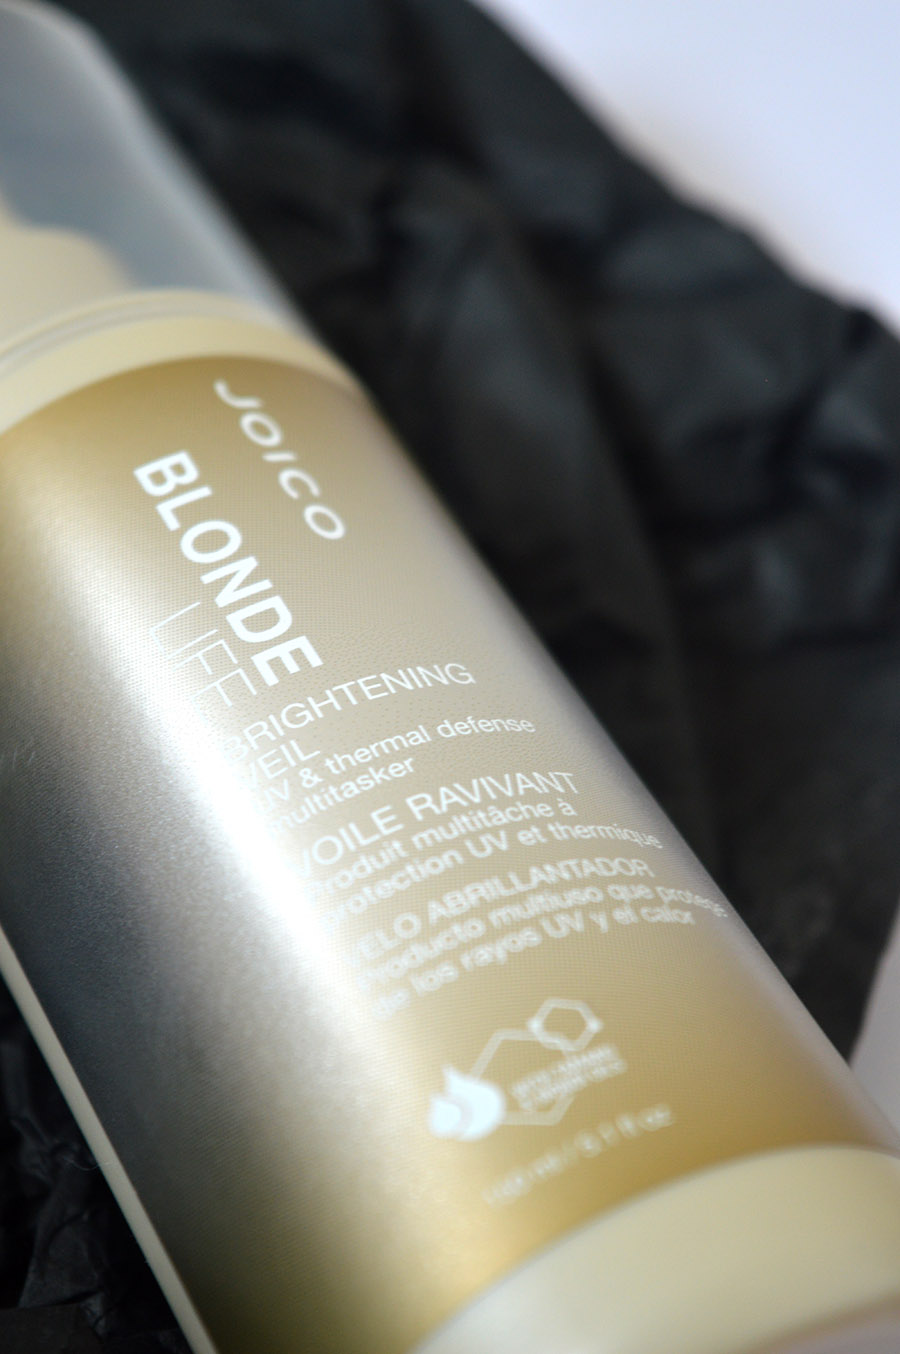 Joico Blonde Life brightening veil review